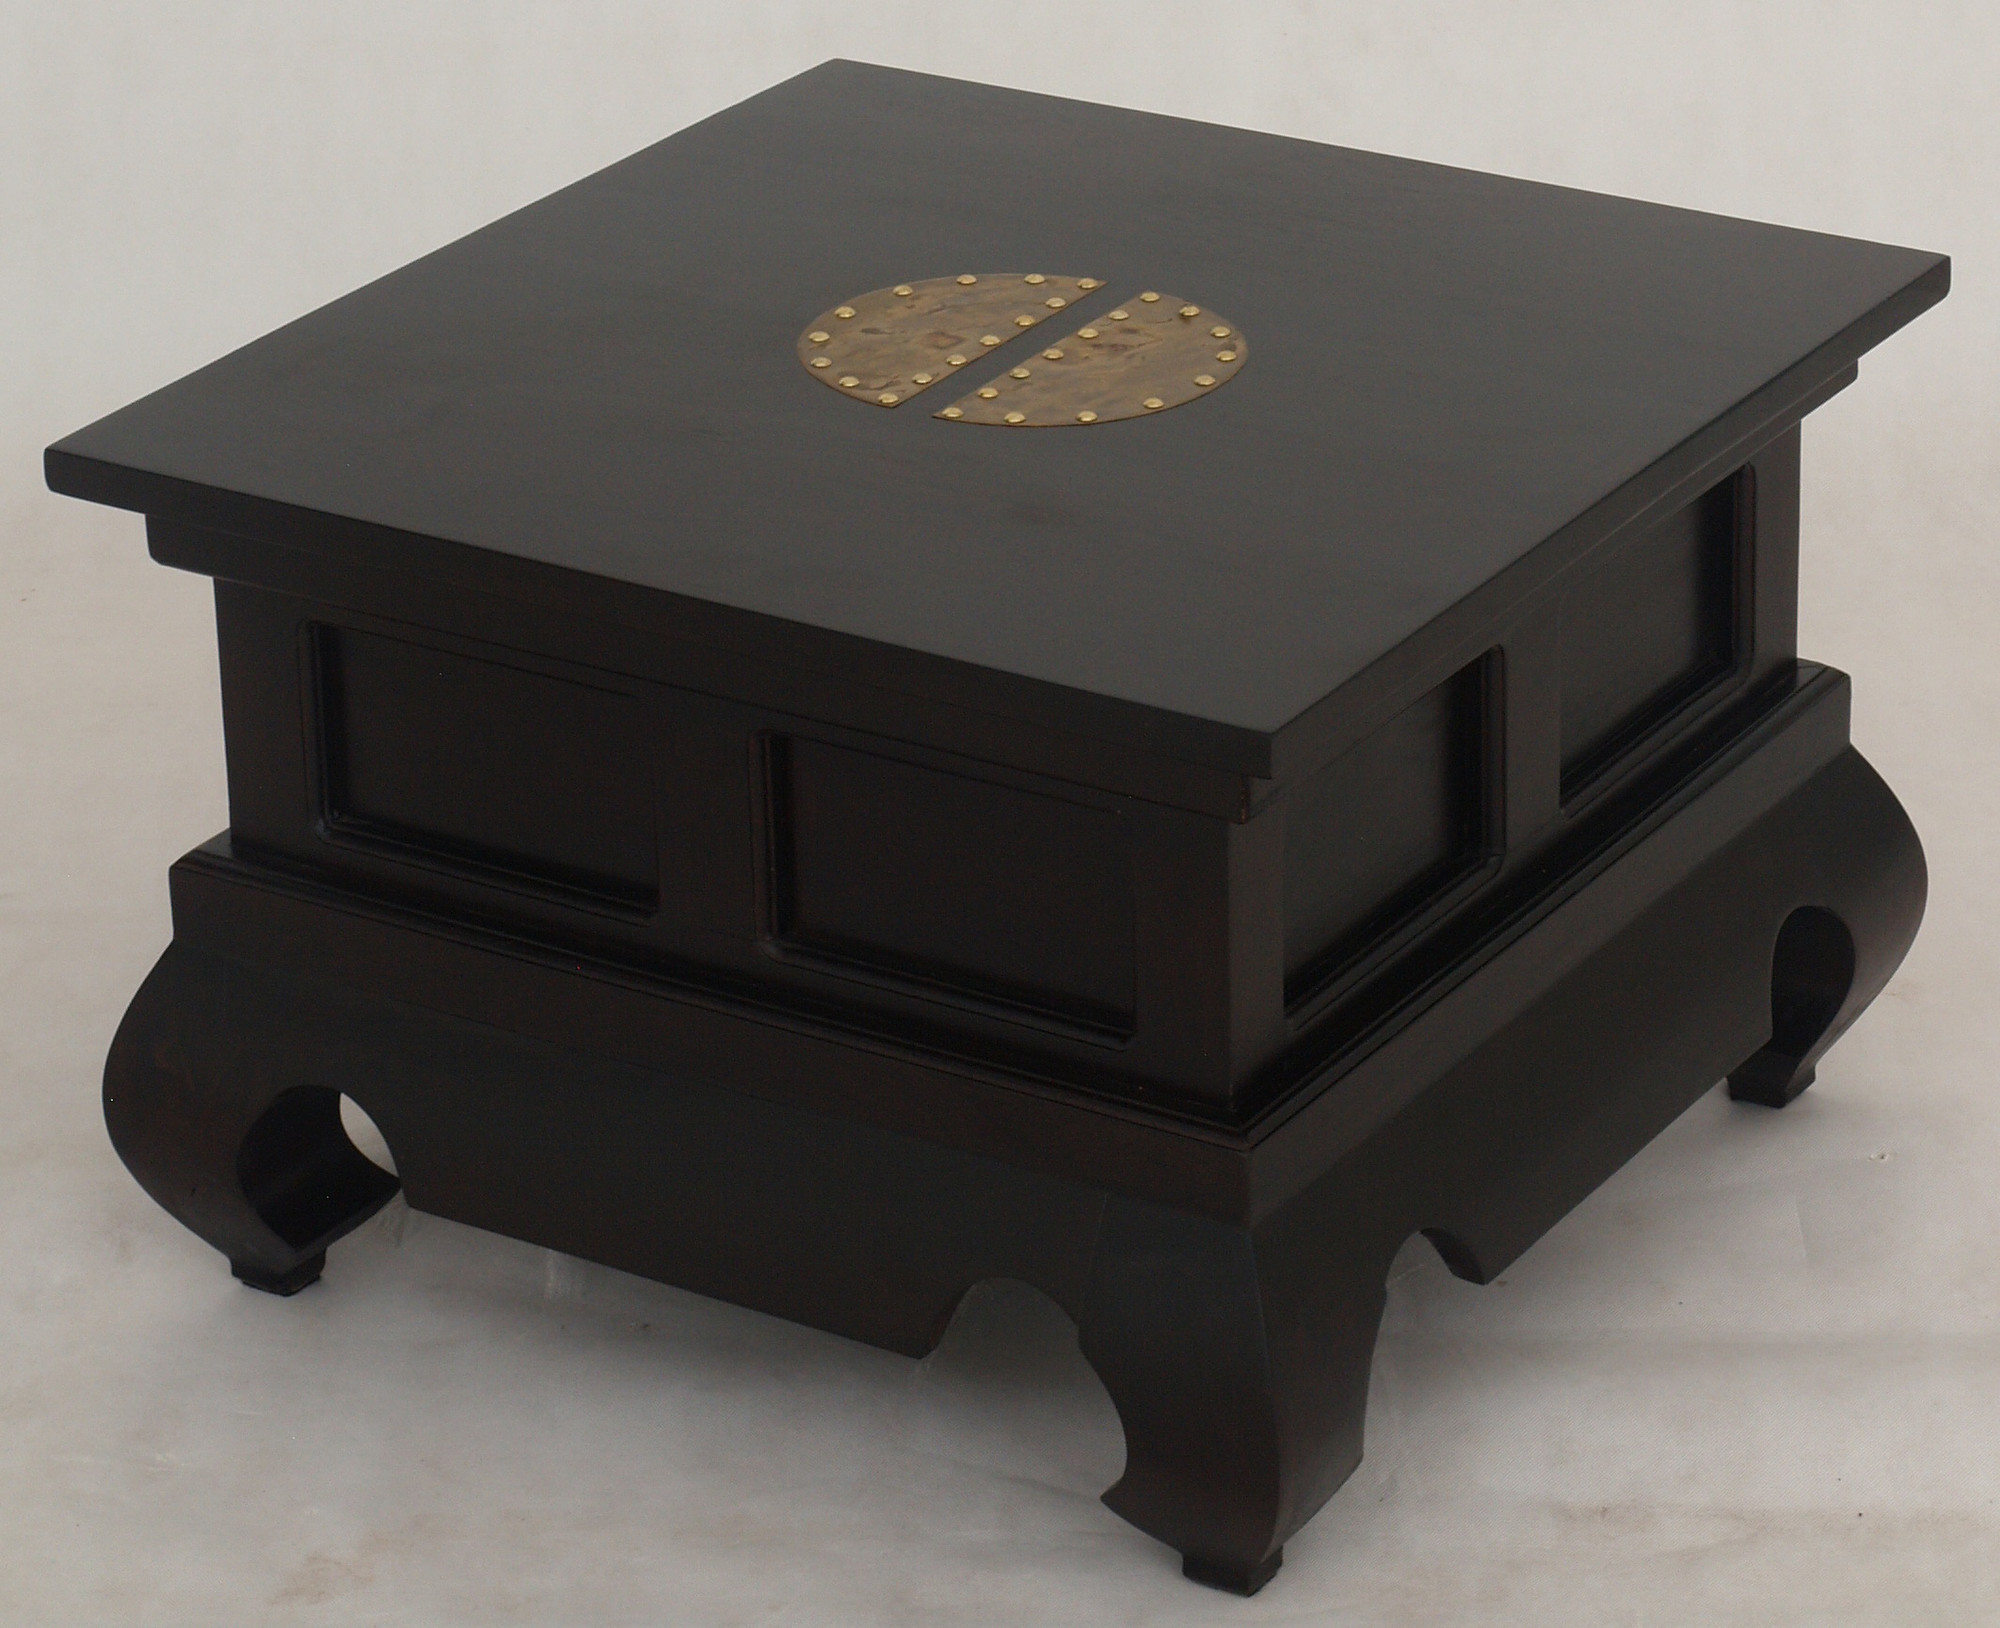 New chinese side table ebay for Chinese furniture ebay australia